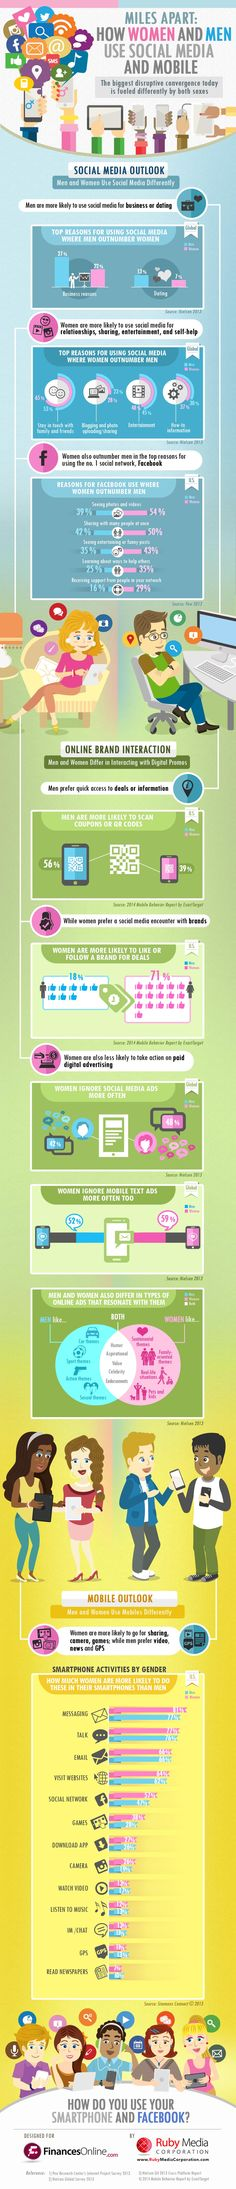 How Men And Women Use Social Media And Mobile (And What This Means For Ads)